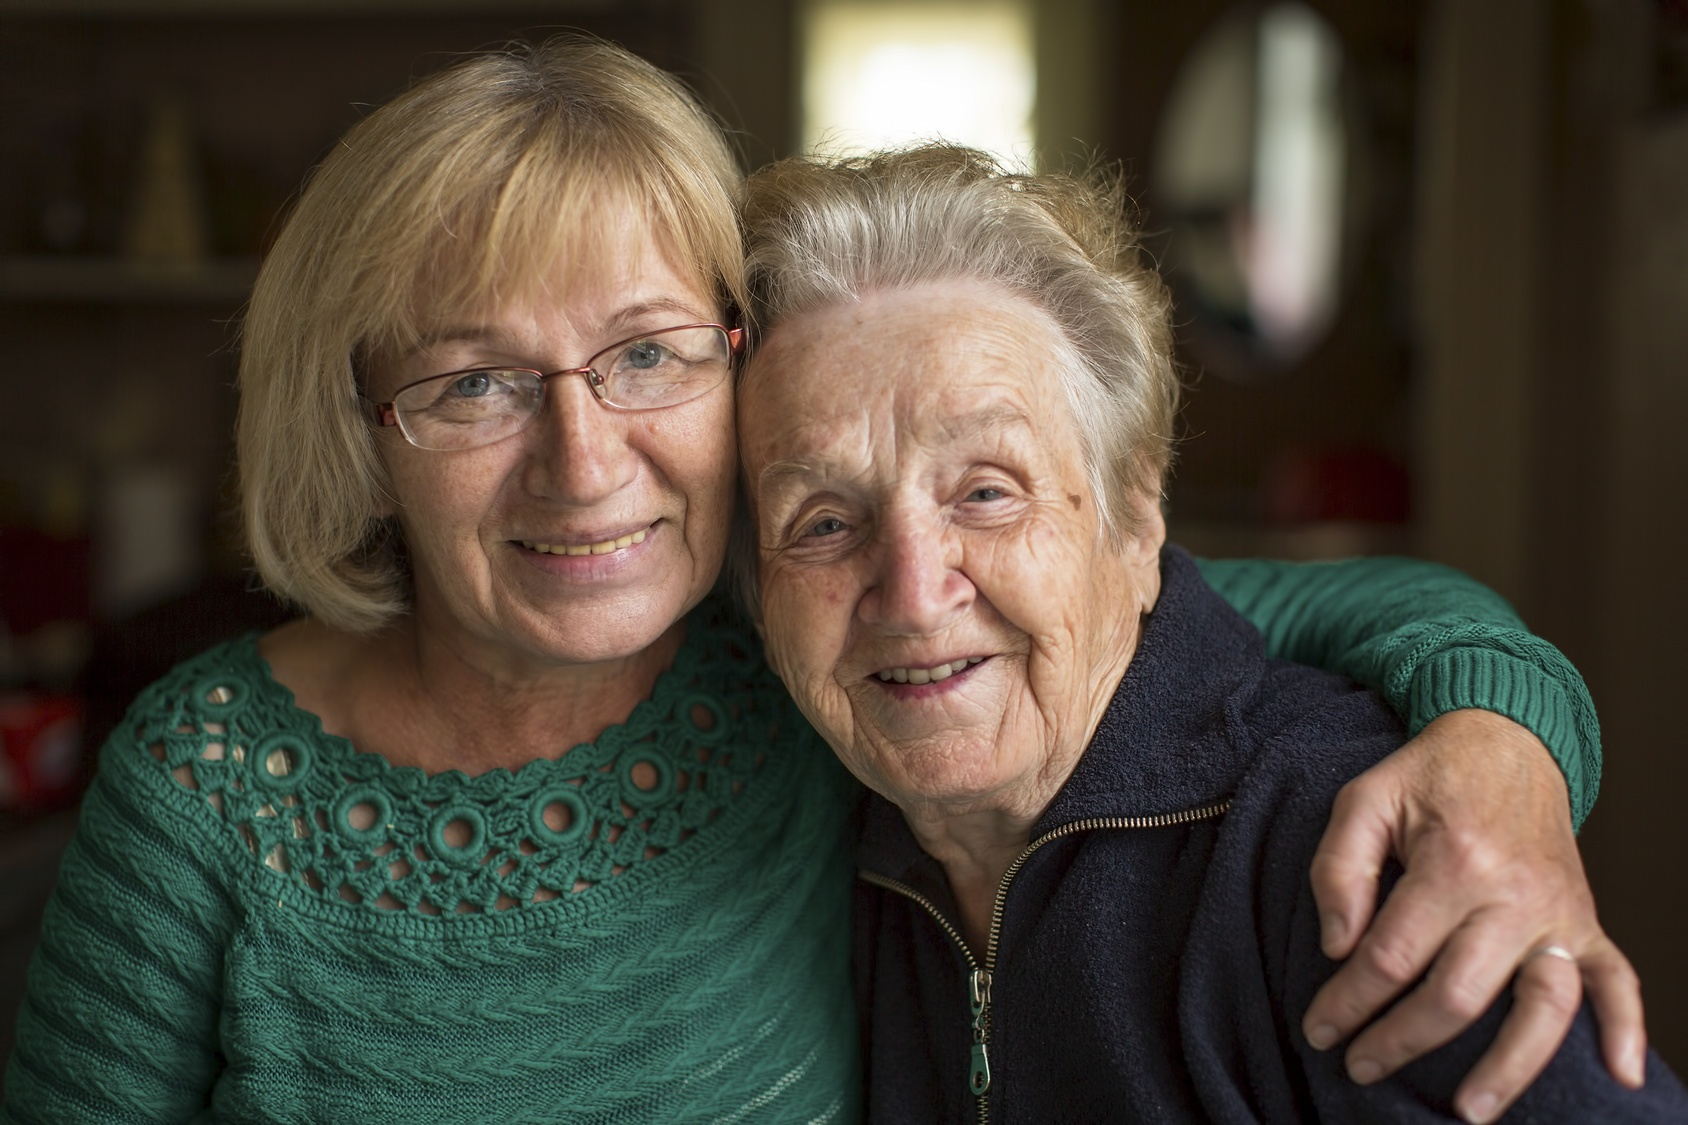 How to Find the Best Memory Care Community for Your Elderly Loved One